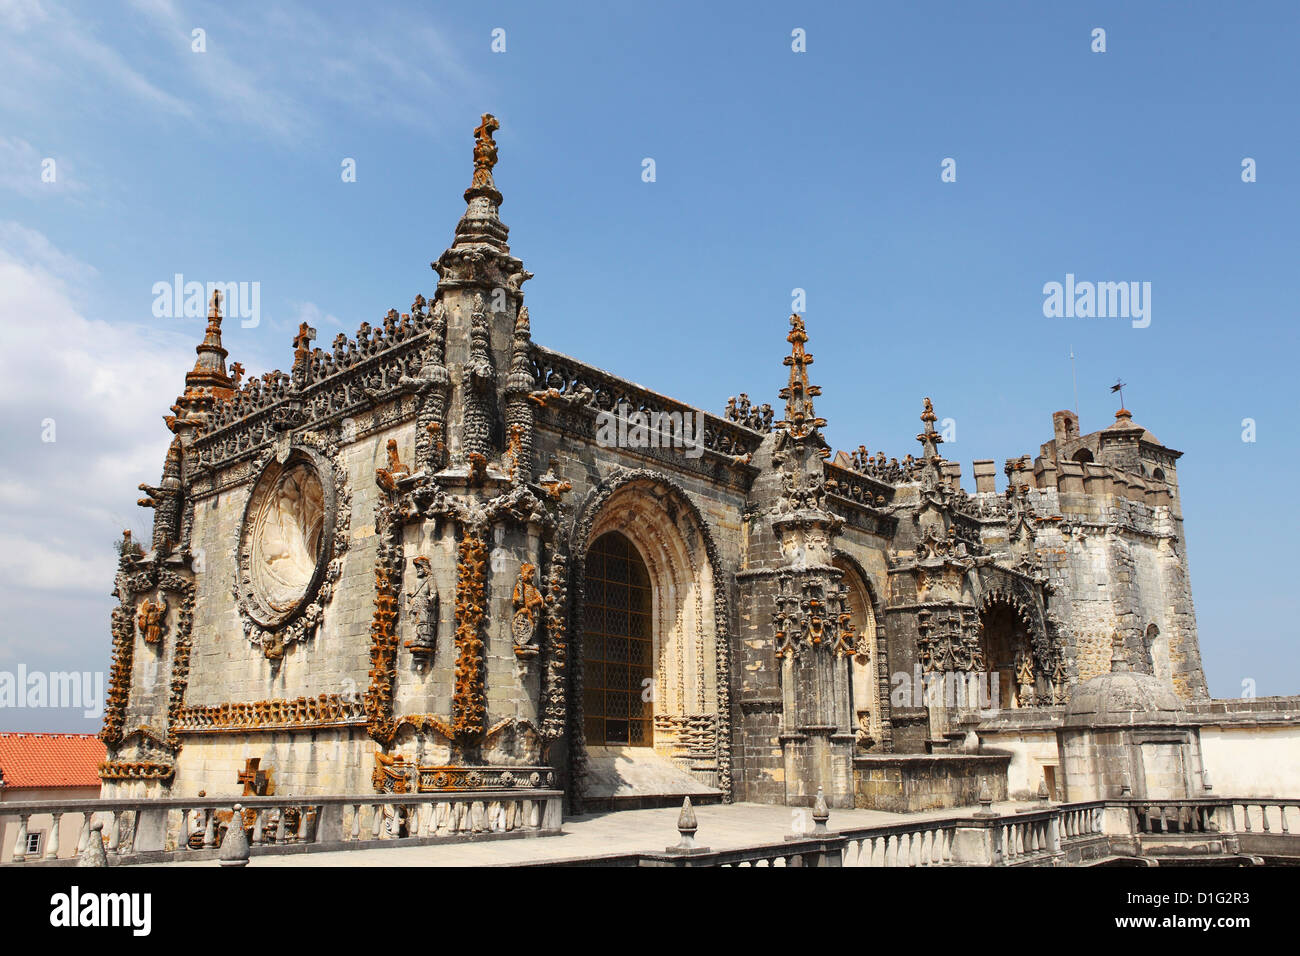 Manueline style Chapterhouse, Convent of Christ (Convento de Cristo), Tomar, Ribatejo, Portugal, Europe - Stock Image